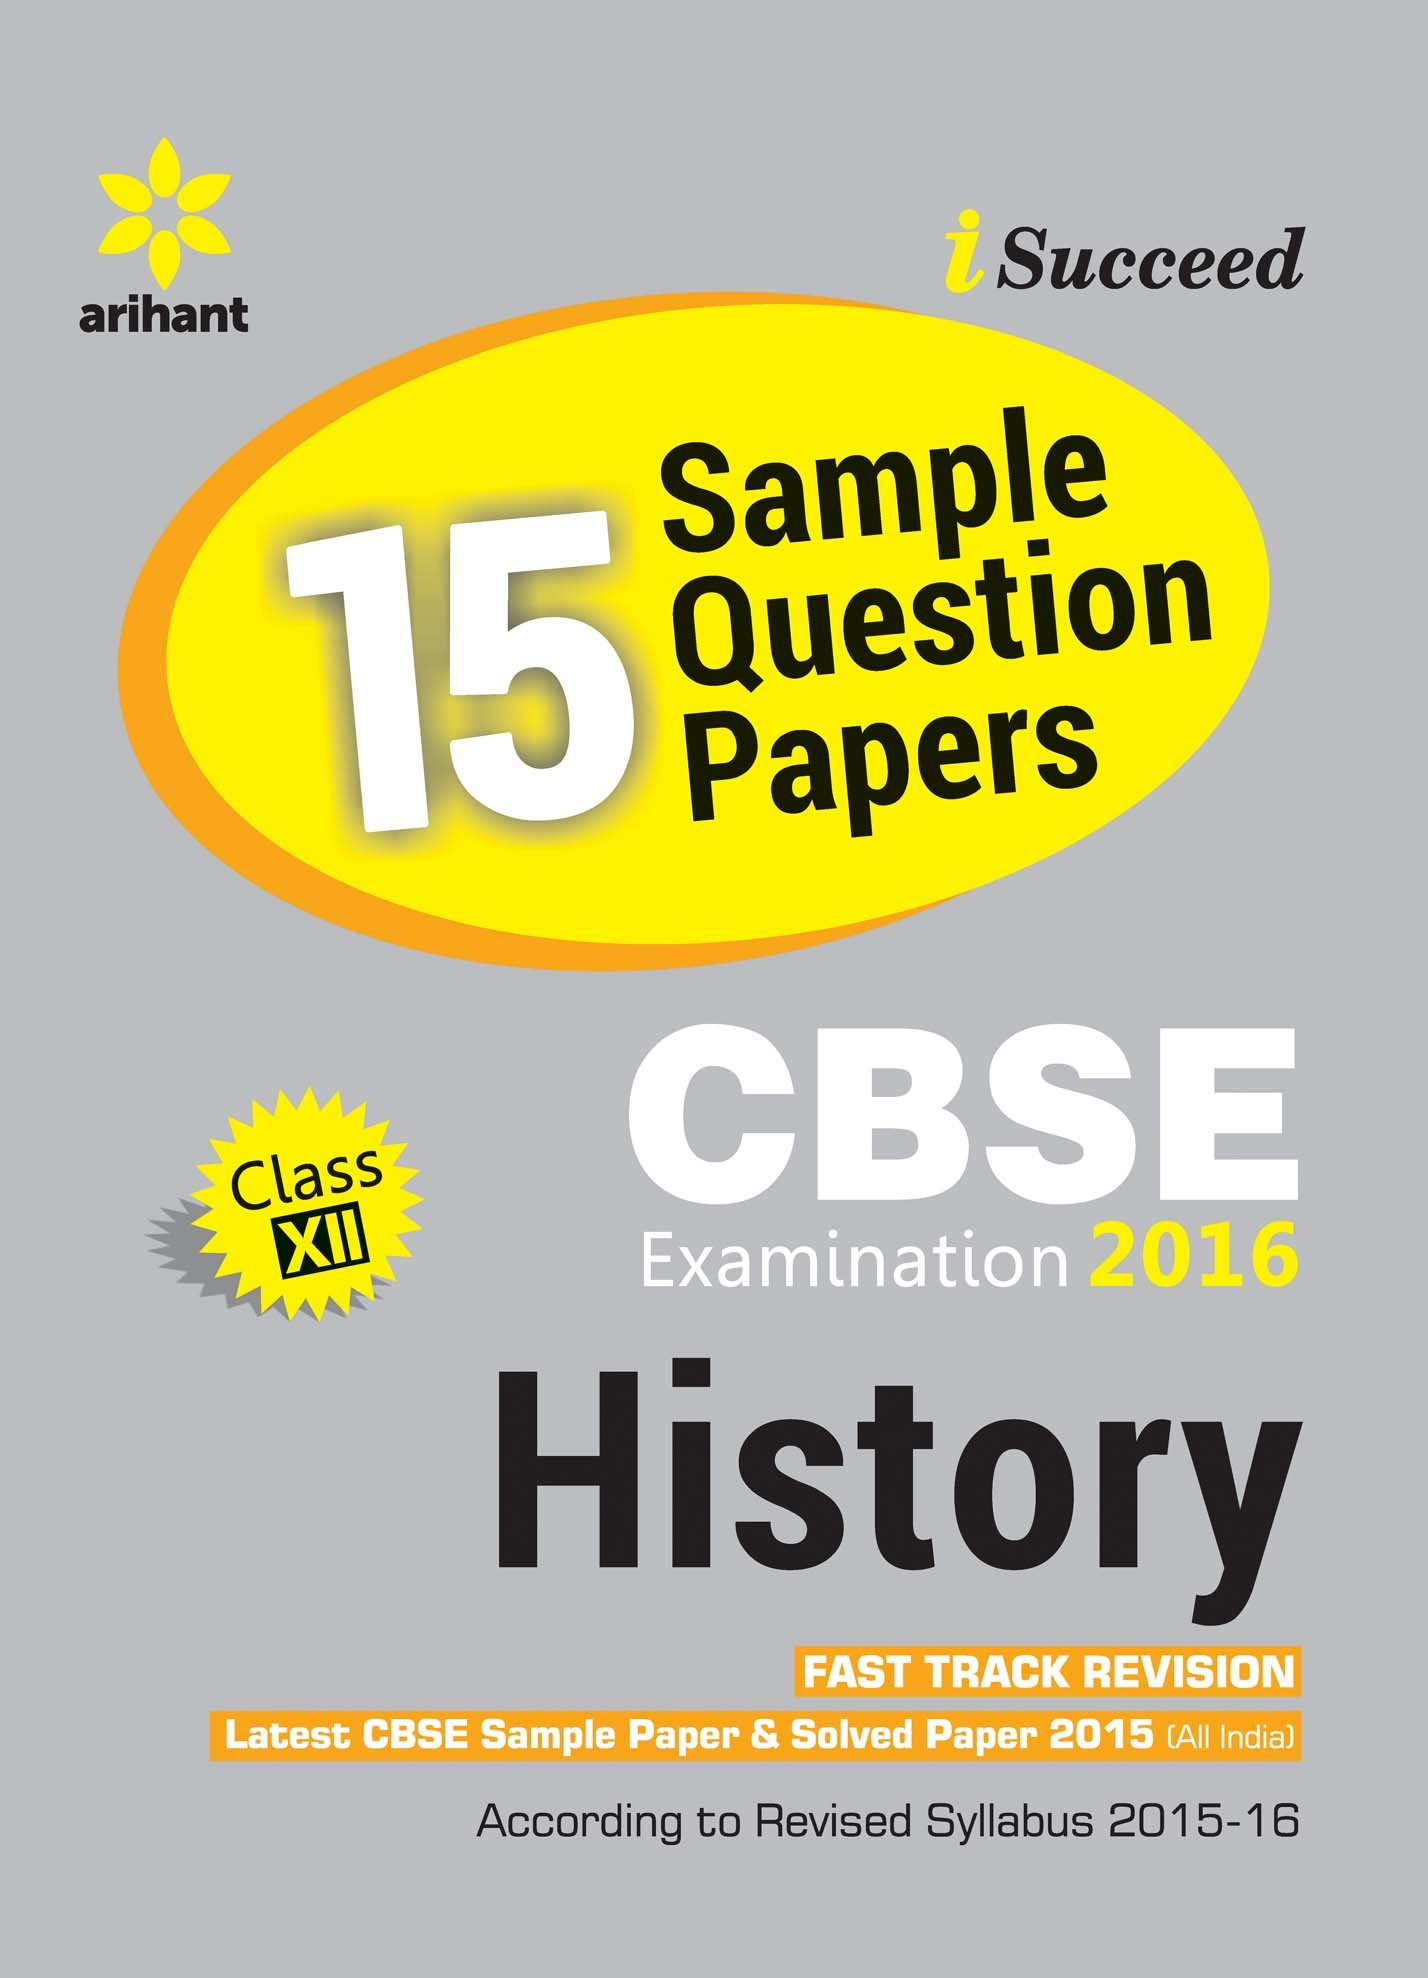 cbse sample papers history for class th old edition amazon cbse 15 sample papers history for class 12th old edition in experts compilation books